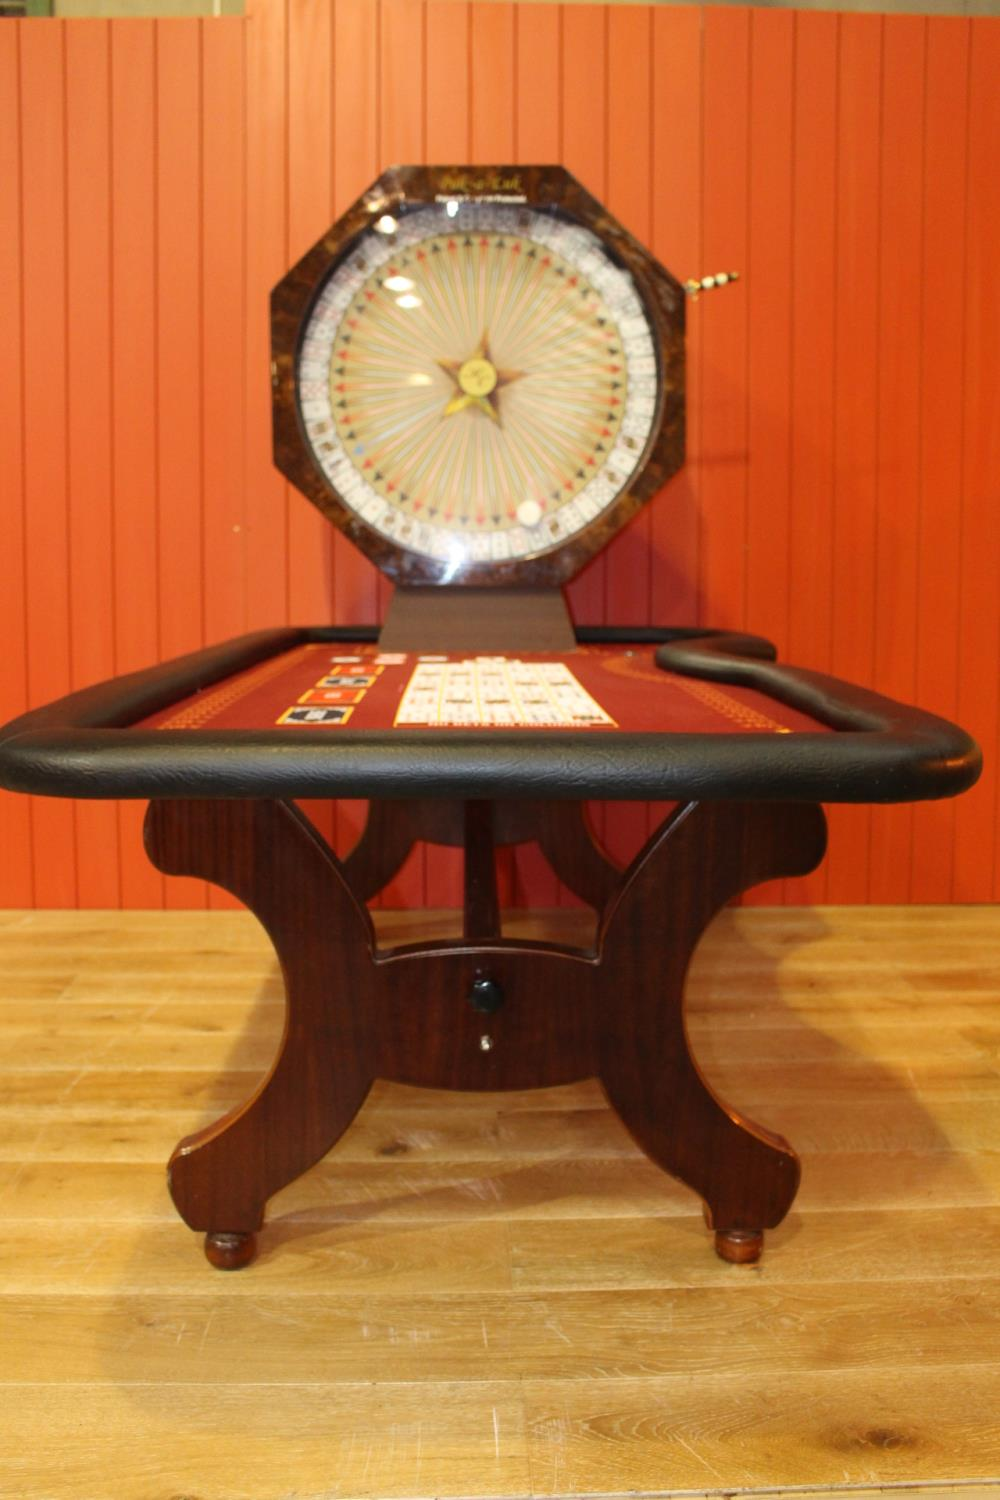 Roulette card table - Image 4 of 4